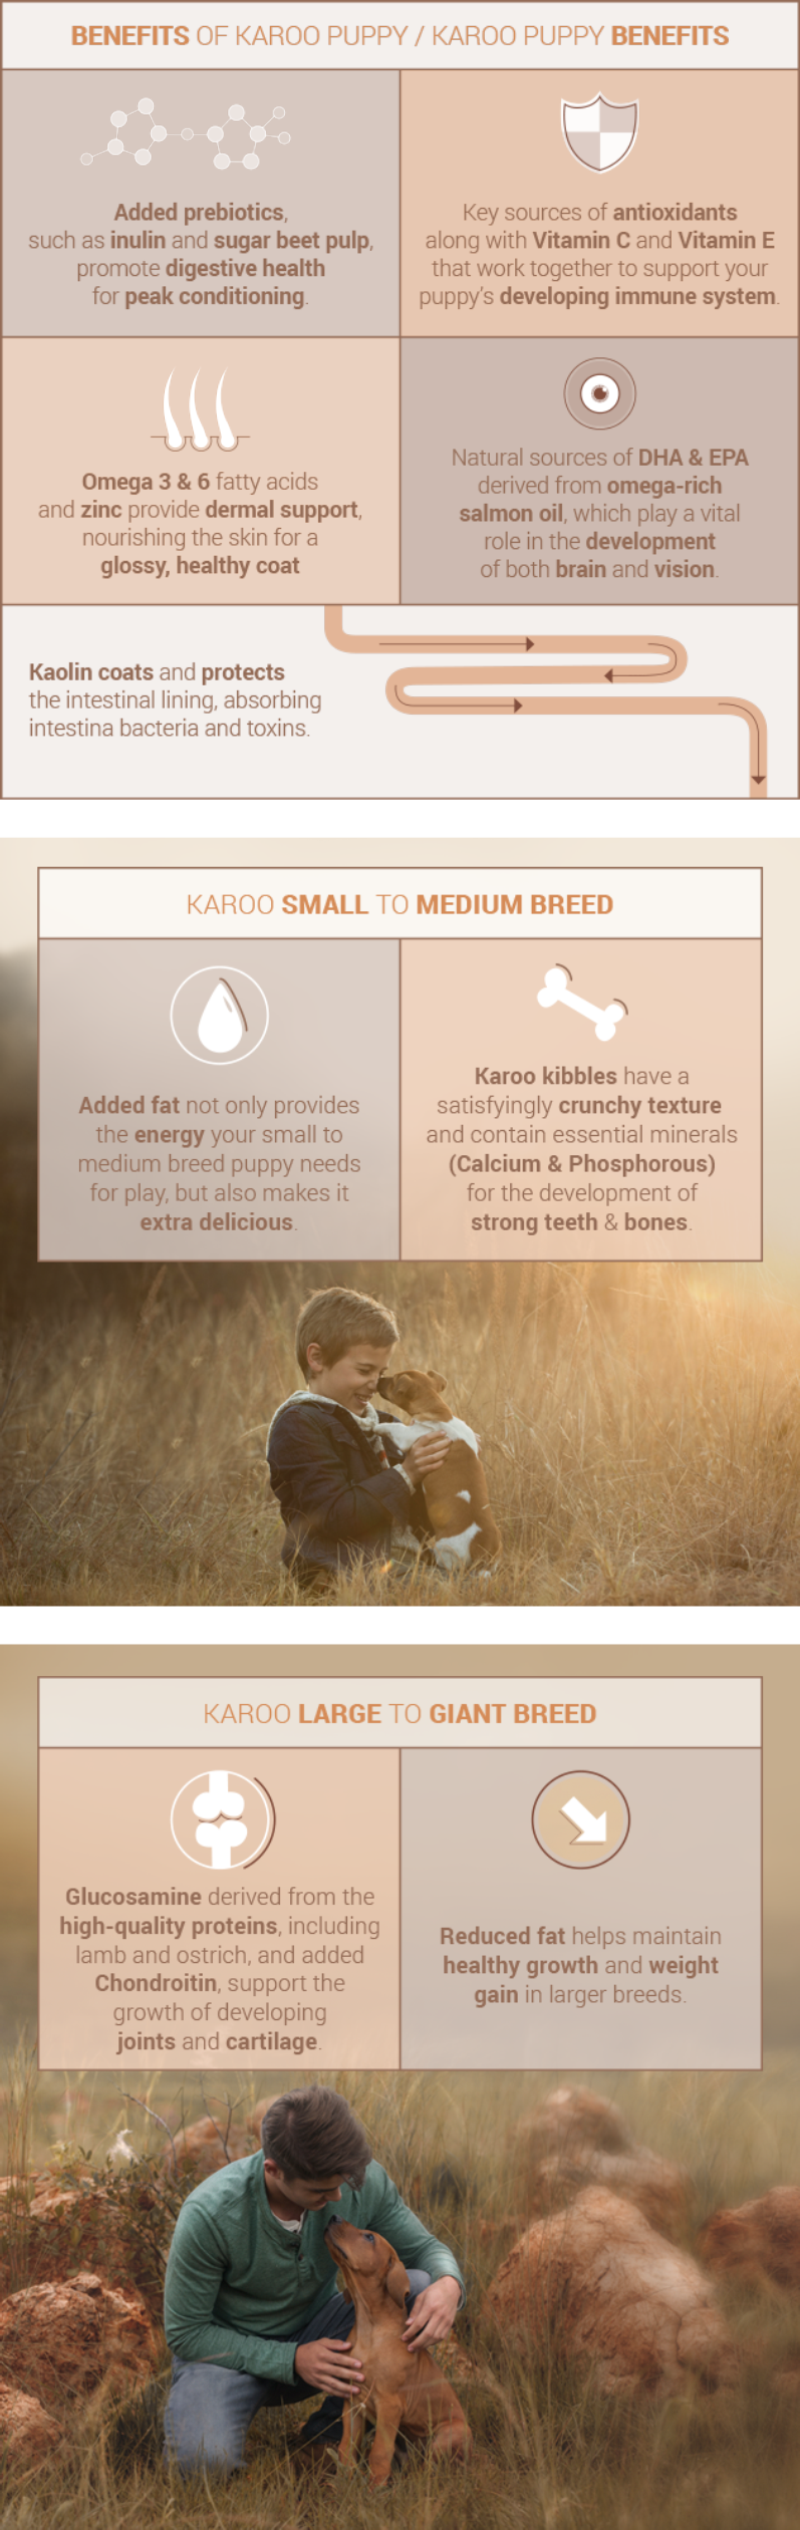 Benefits of Karoo Puppy